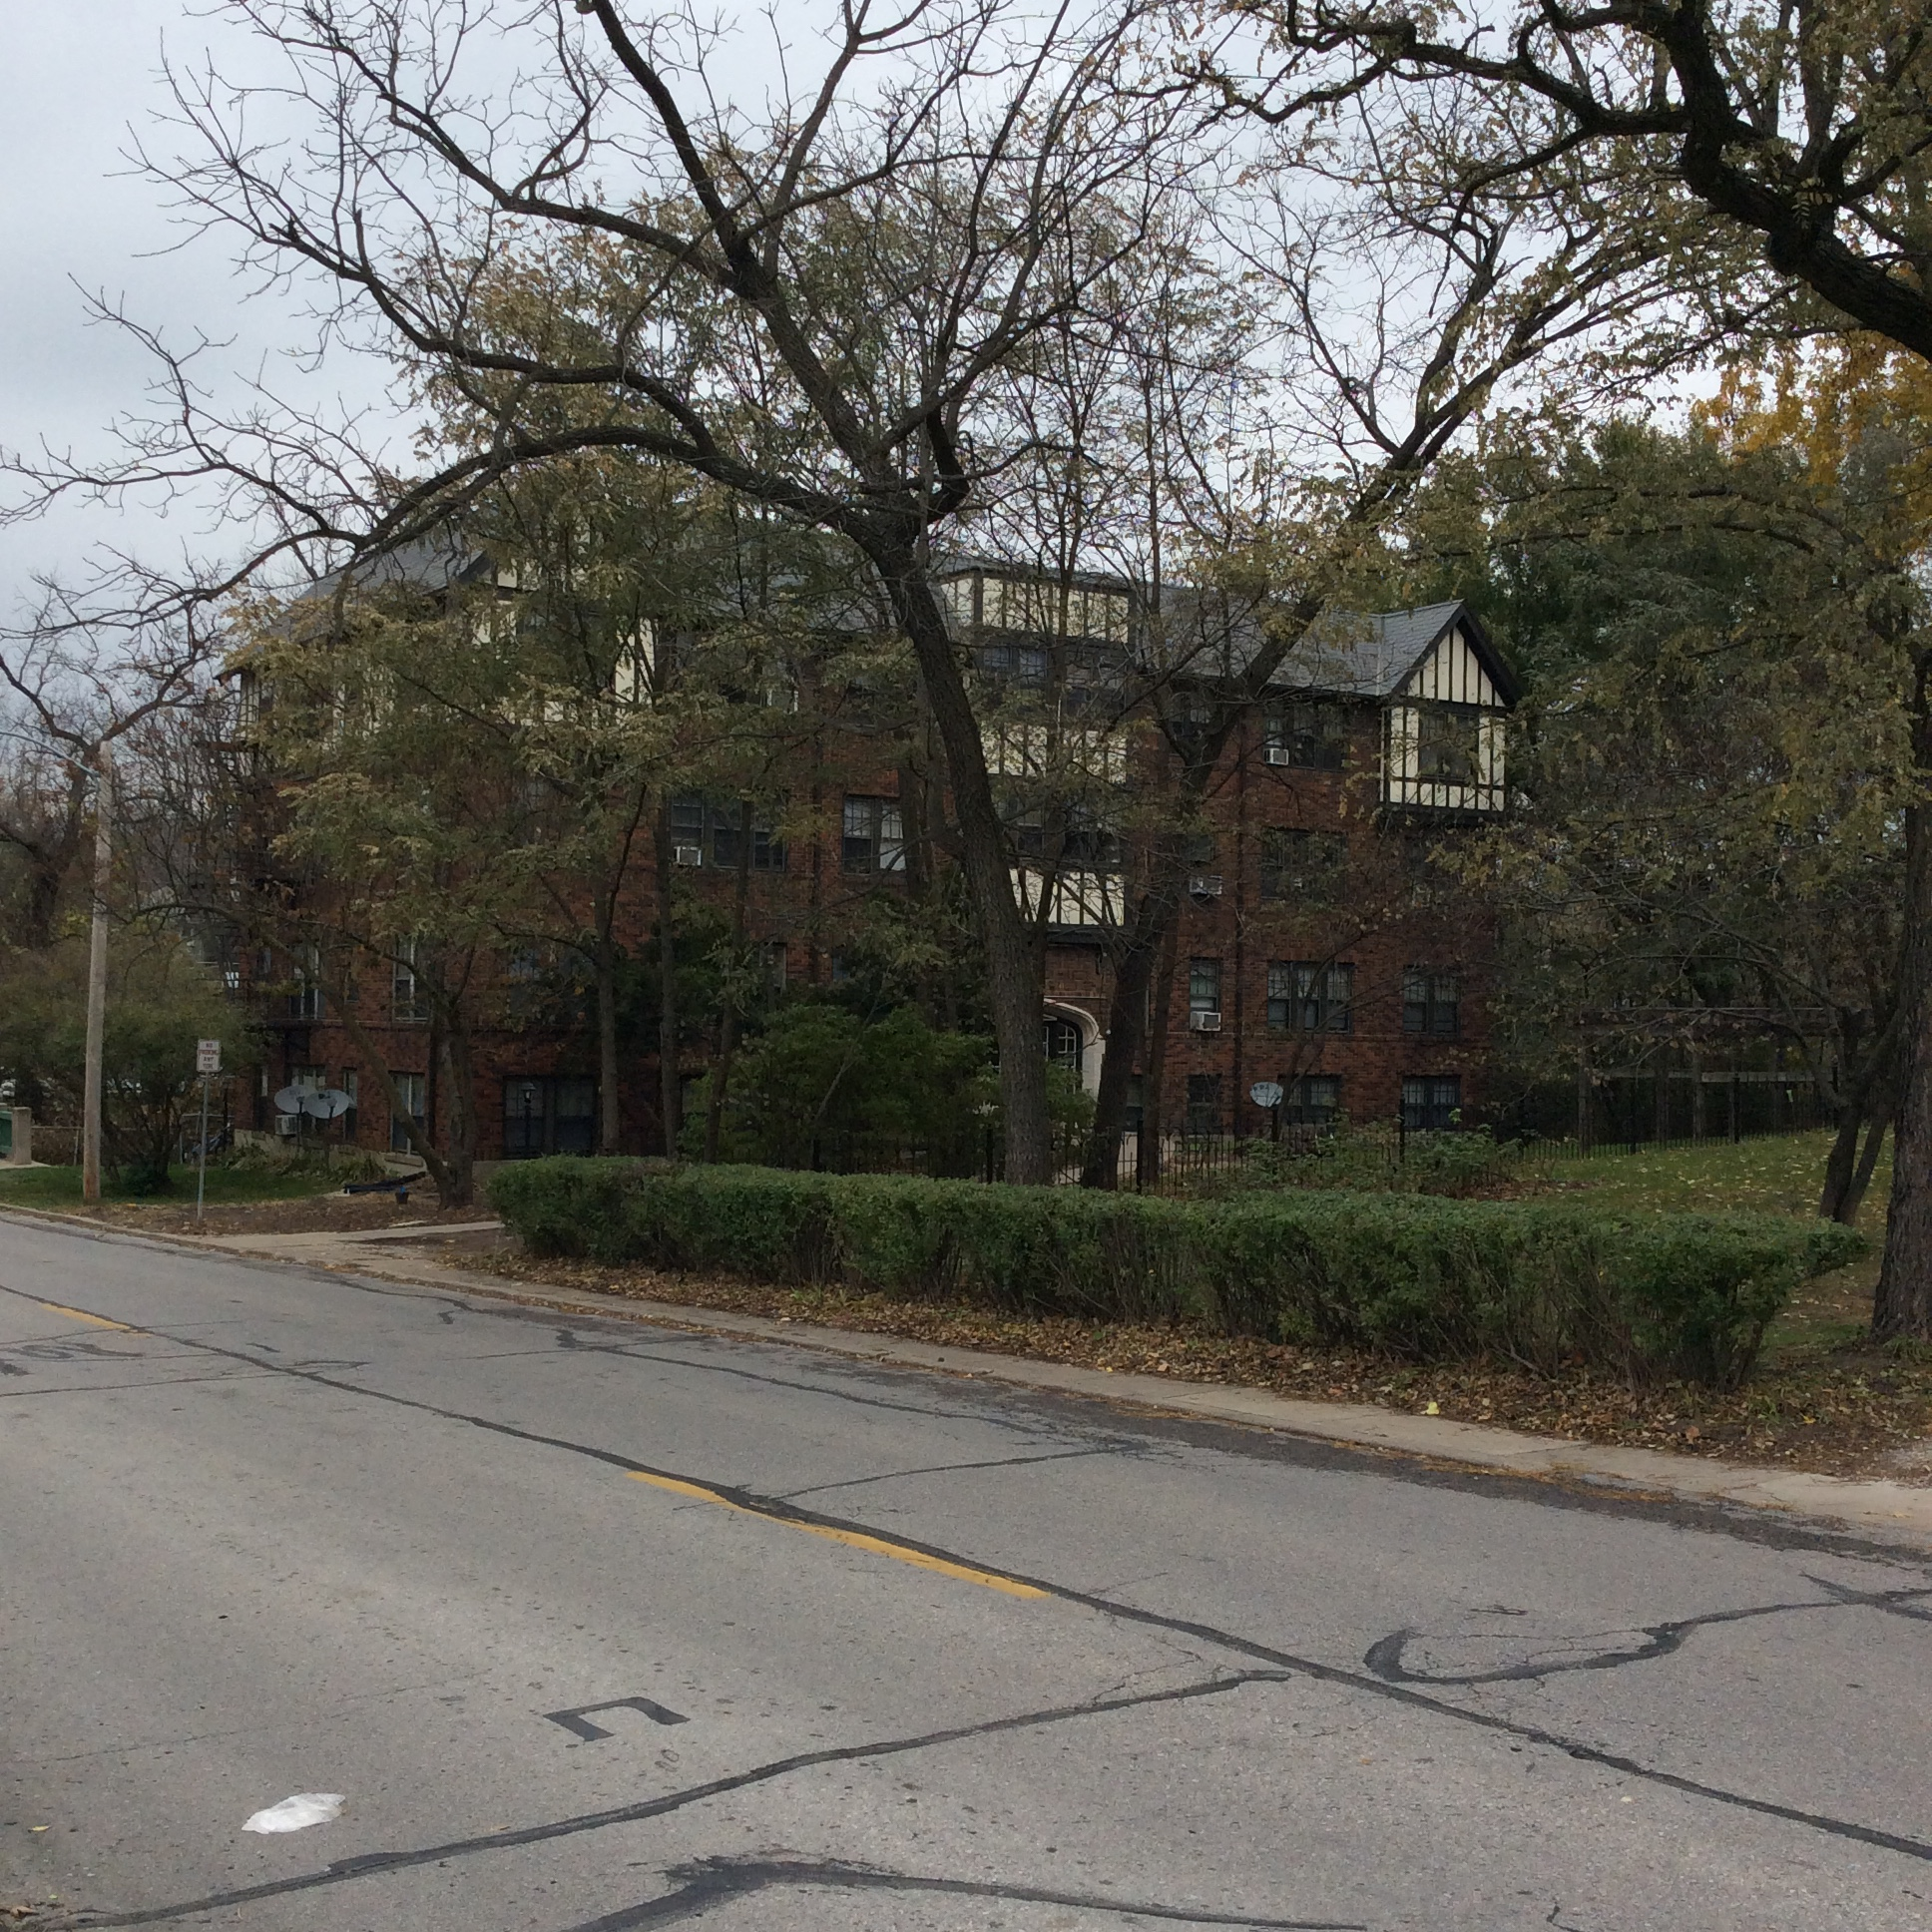 Apartment House In Iowa City Where I Did Laundry